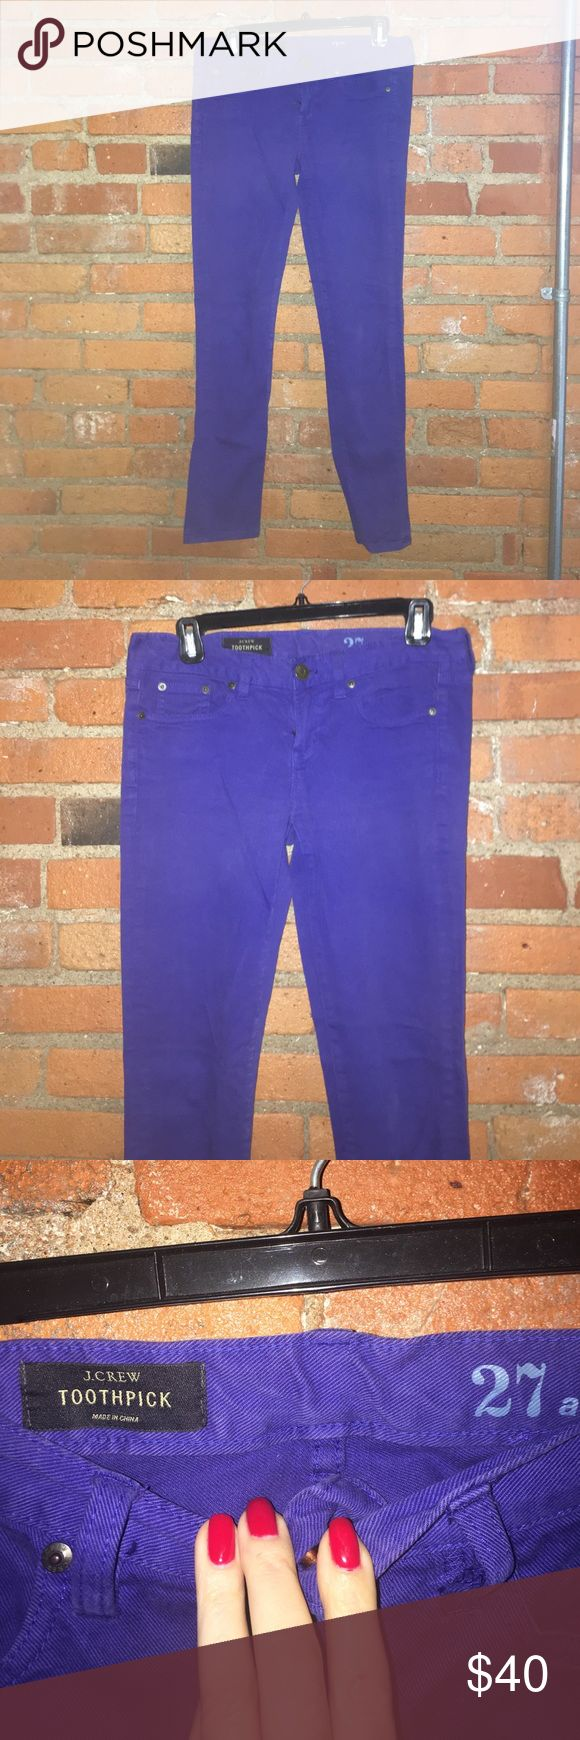 J.Crew blue royal blue toothpick ankle jeans 27 Excellent condition! Worn once. Look a little wrinkled in photo just from being folded up in my closet. Blue denim toothpick ankle style, size 27 J. Crew Jeans Ankle & Cropped